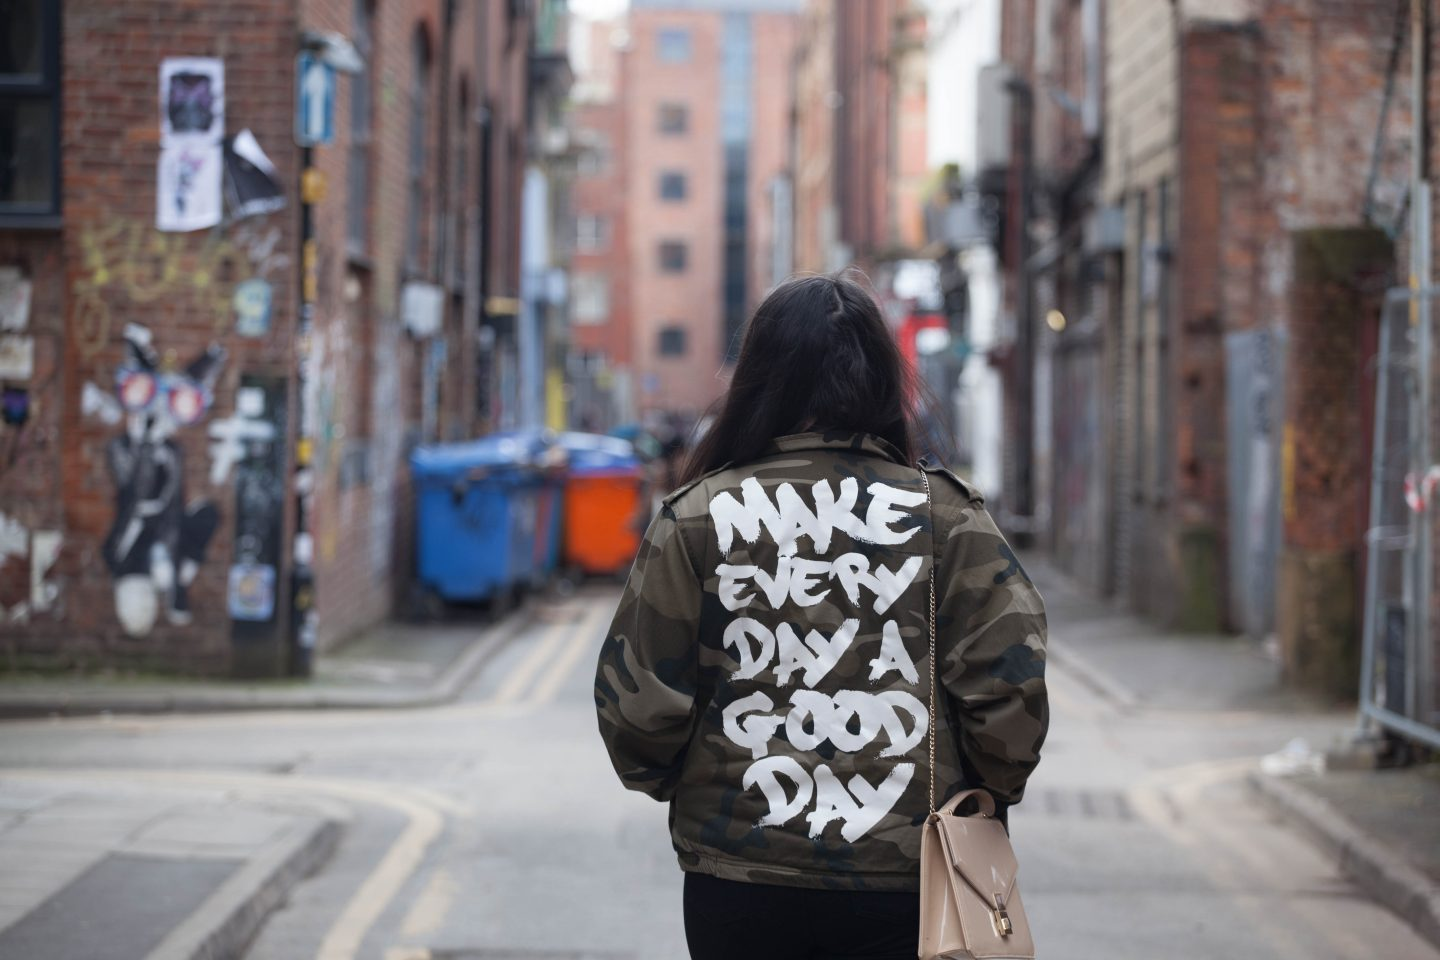 Image Shows: Shot of Jess Wilby from Philocalist walking down a Manchester backstreet wearing a camo jacket that displays the message 'Make every day a good day'.